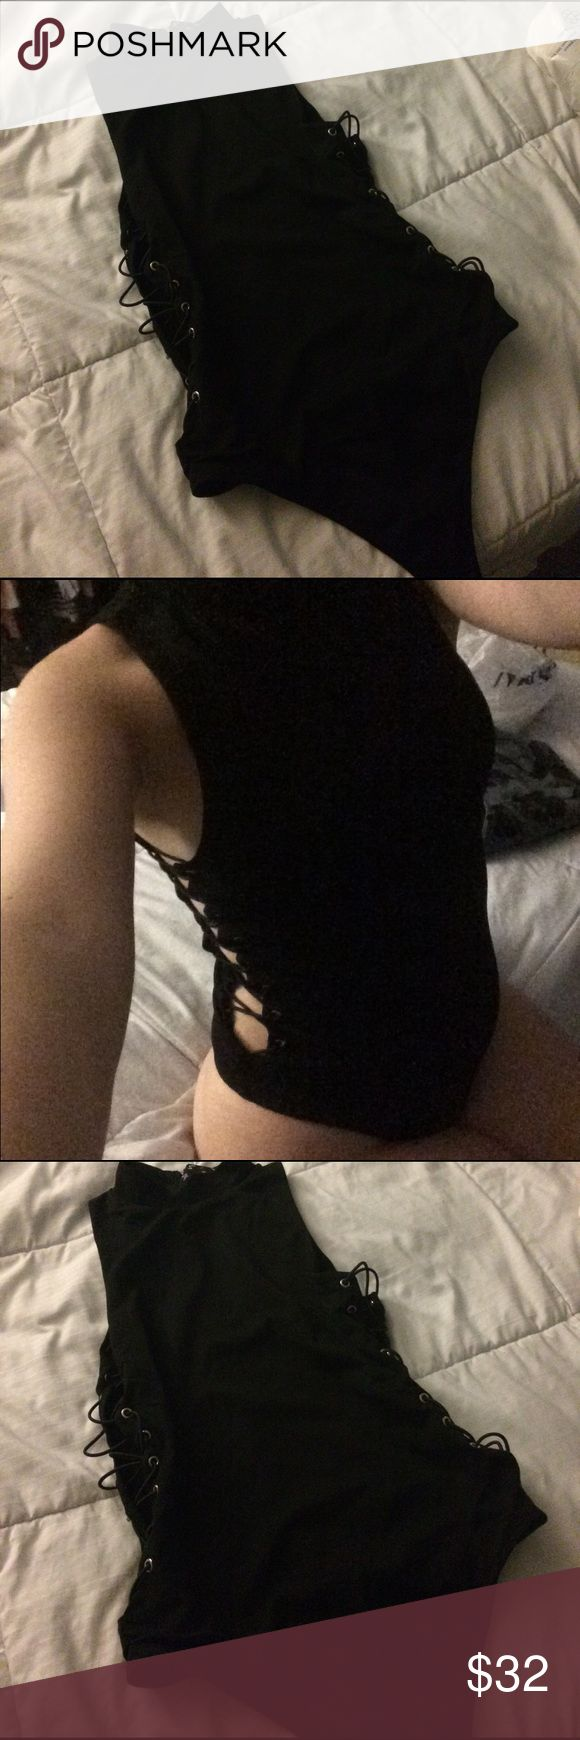 Nasty Gal Body Suit NWT Nast Gal Body Suit in jet black. Never worn, just for the photo. Elastic sides and thong back. Runs a little small. Made in USA. Tag says M but fits Small more like 2-4 Nasty Gal Tops